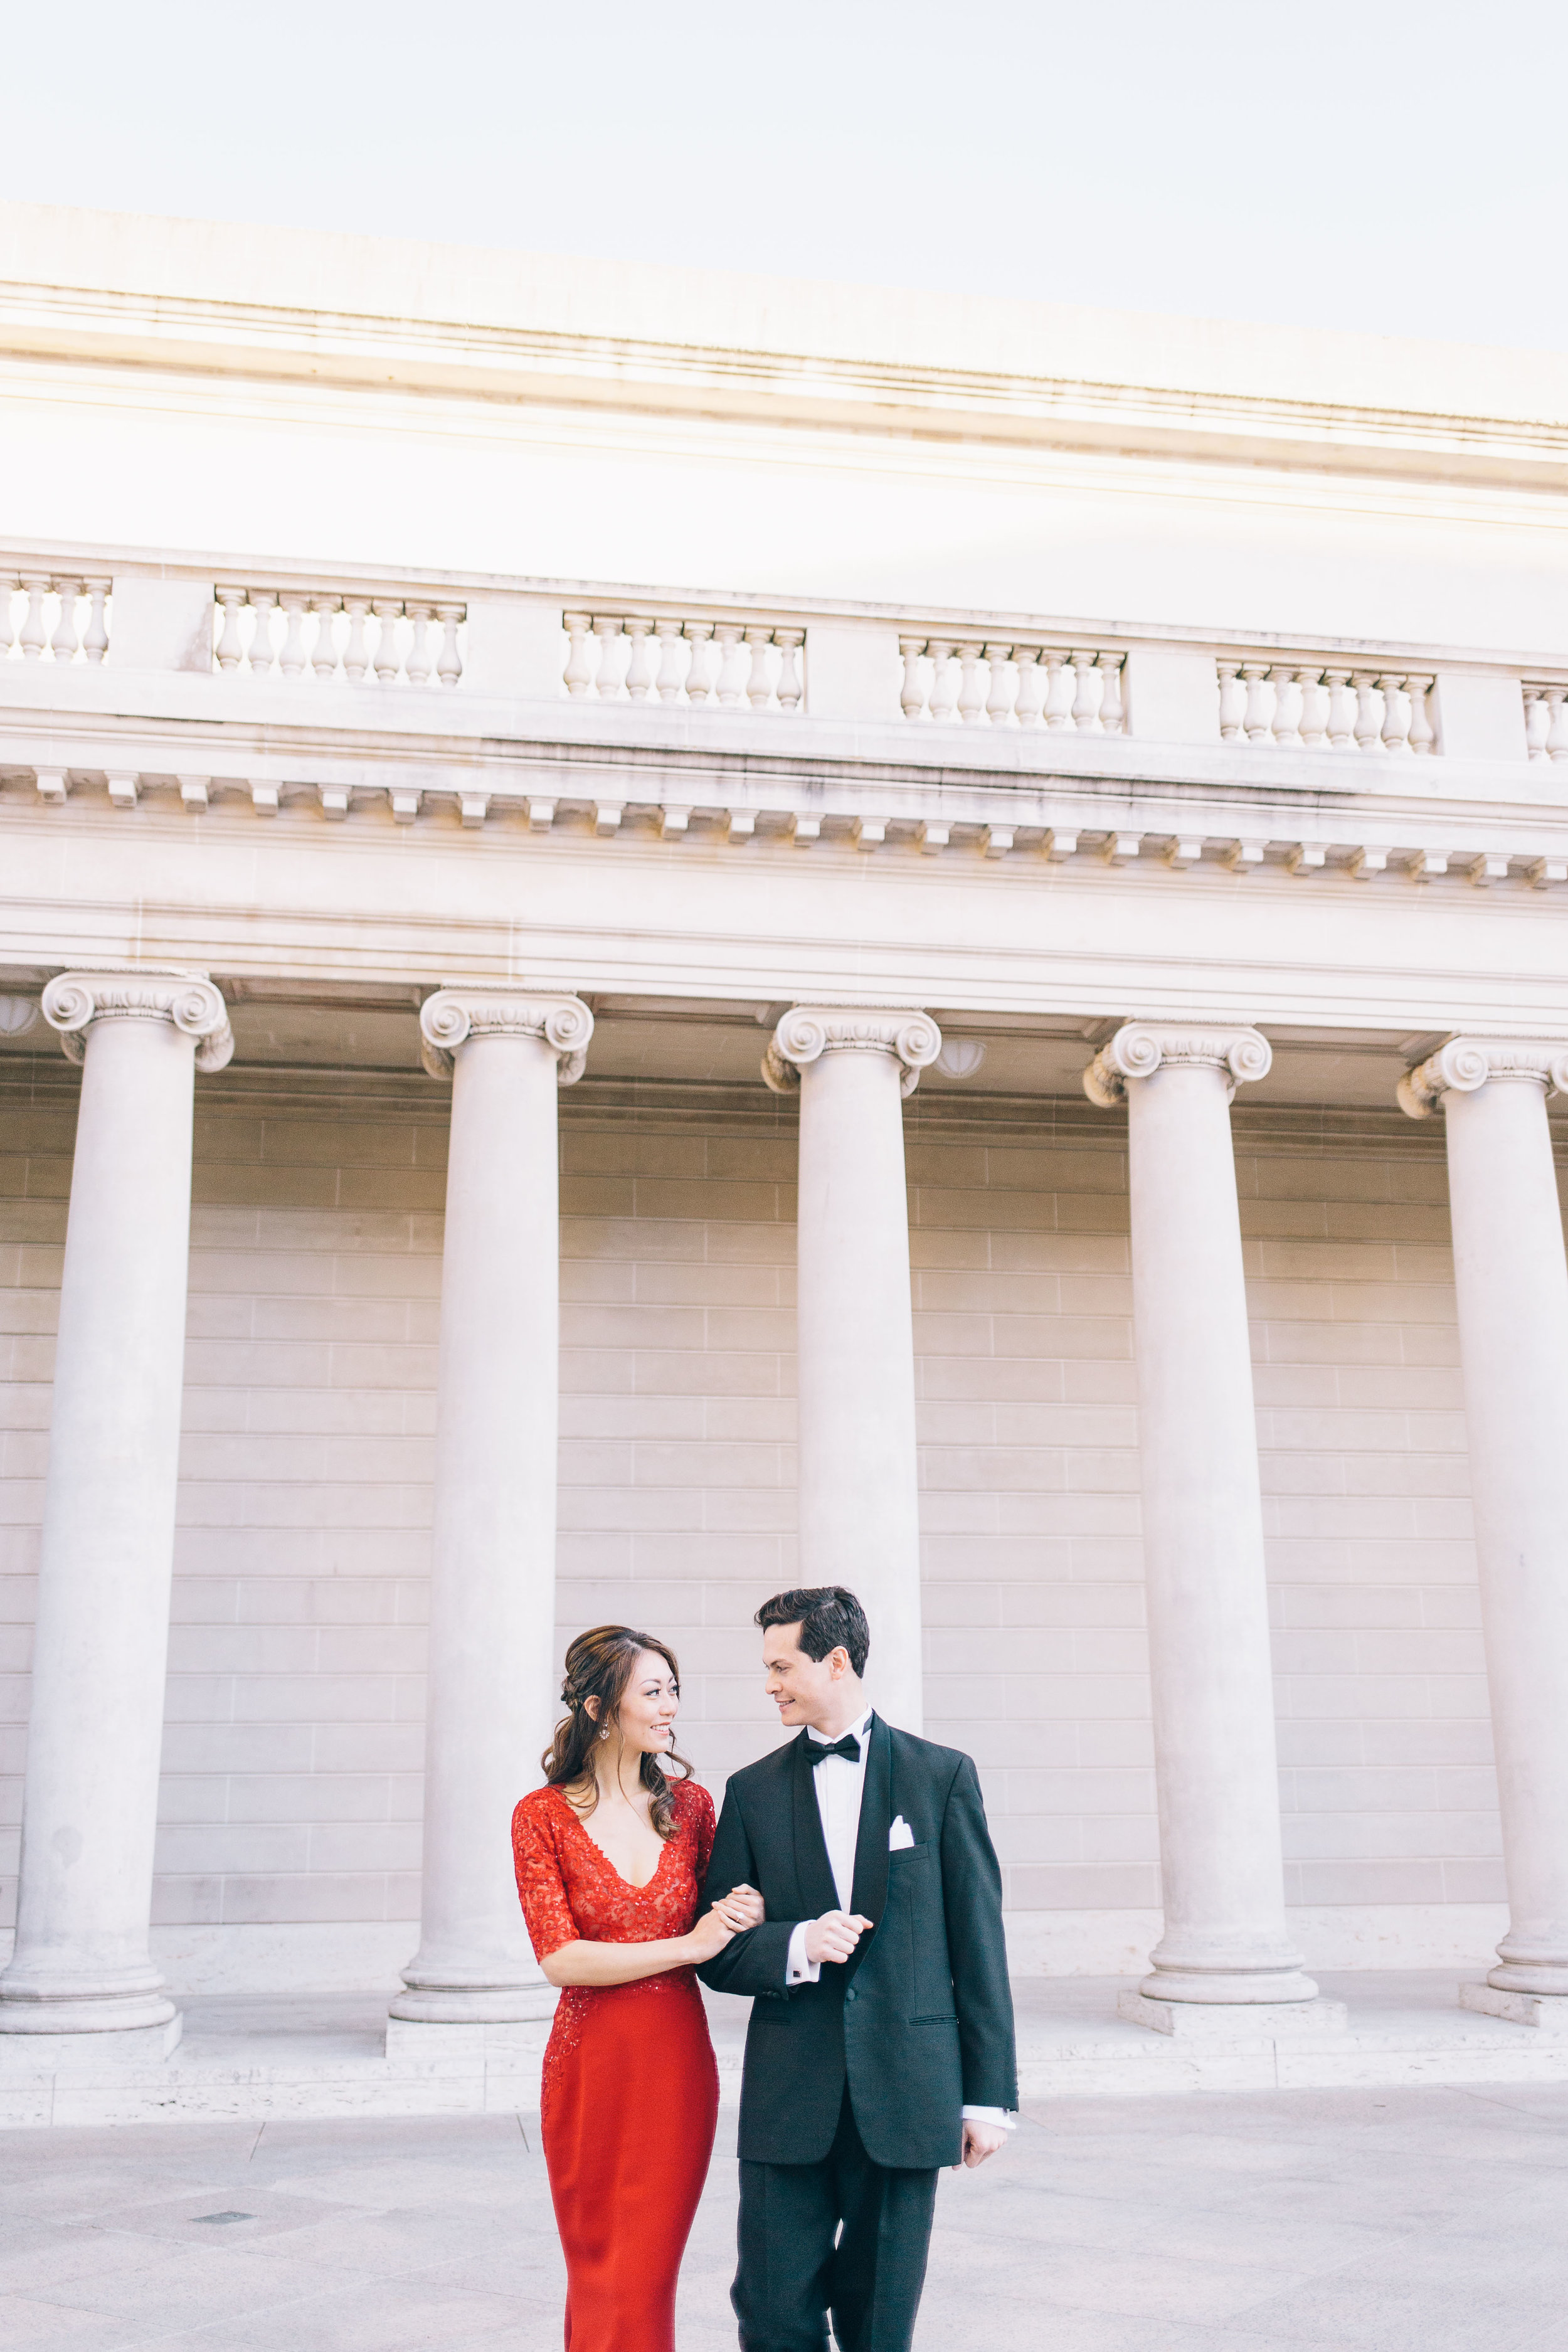 Legion of Honor Engagement Photos by JBJ Pictures - Best Locations for Engagement Photos in SF (6).jpg